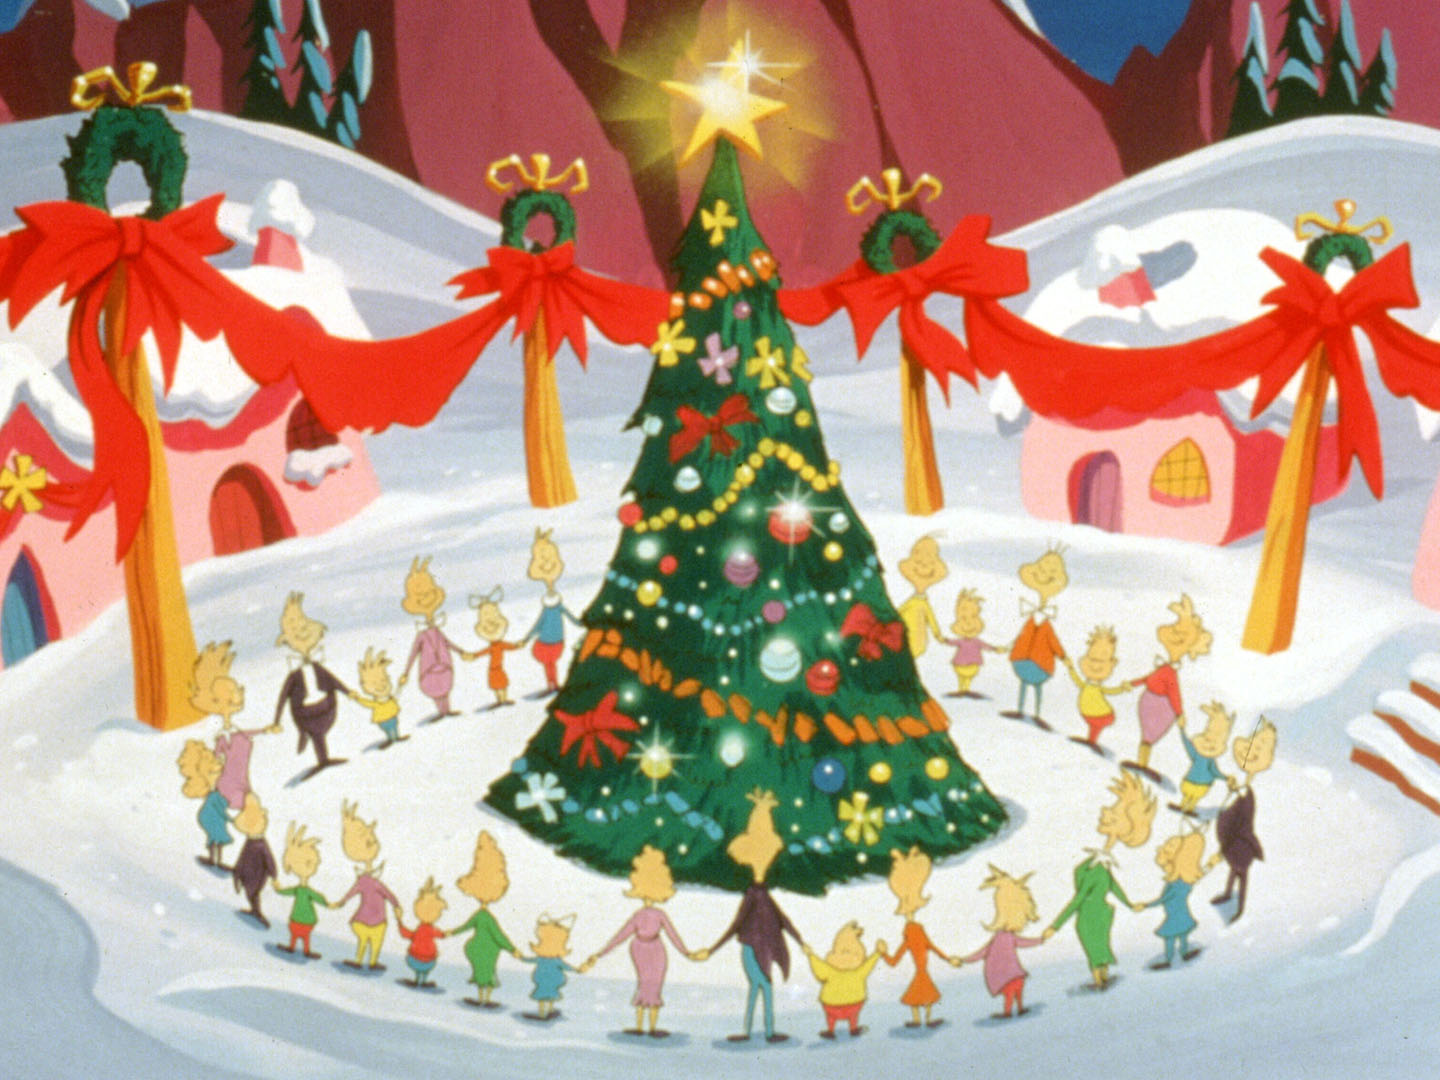 The Merry Little Christmas Project The Year We Almost